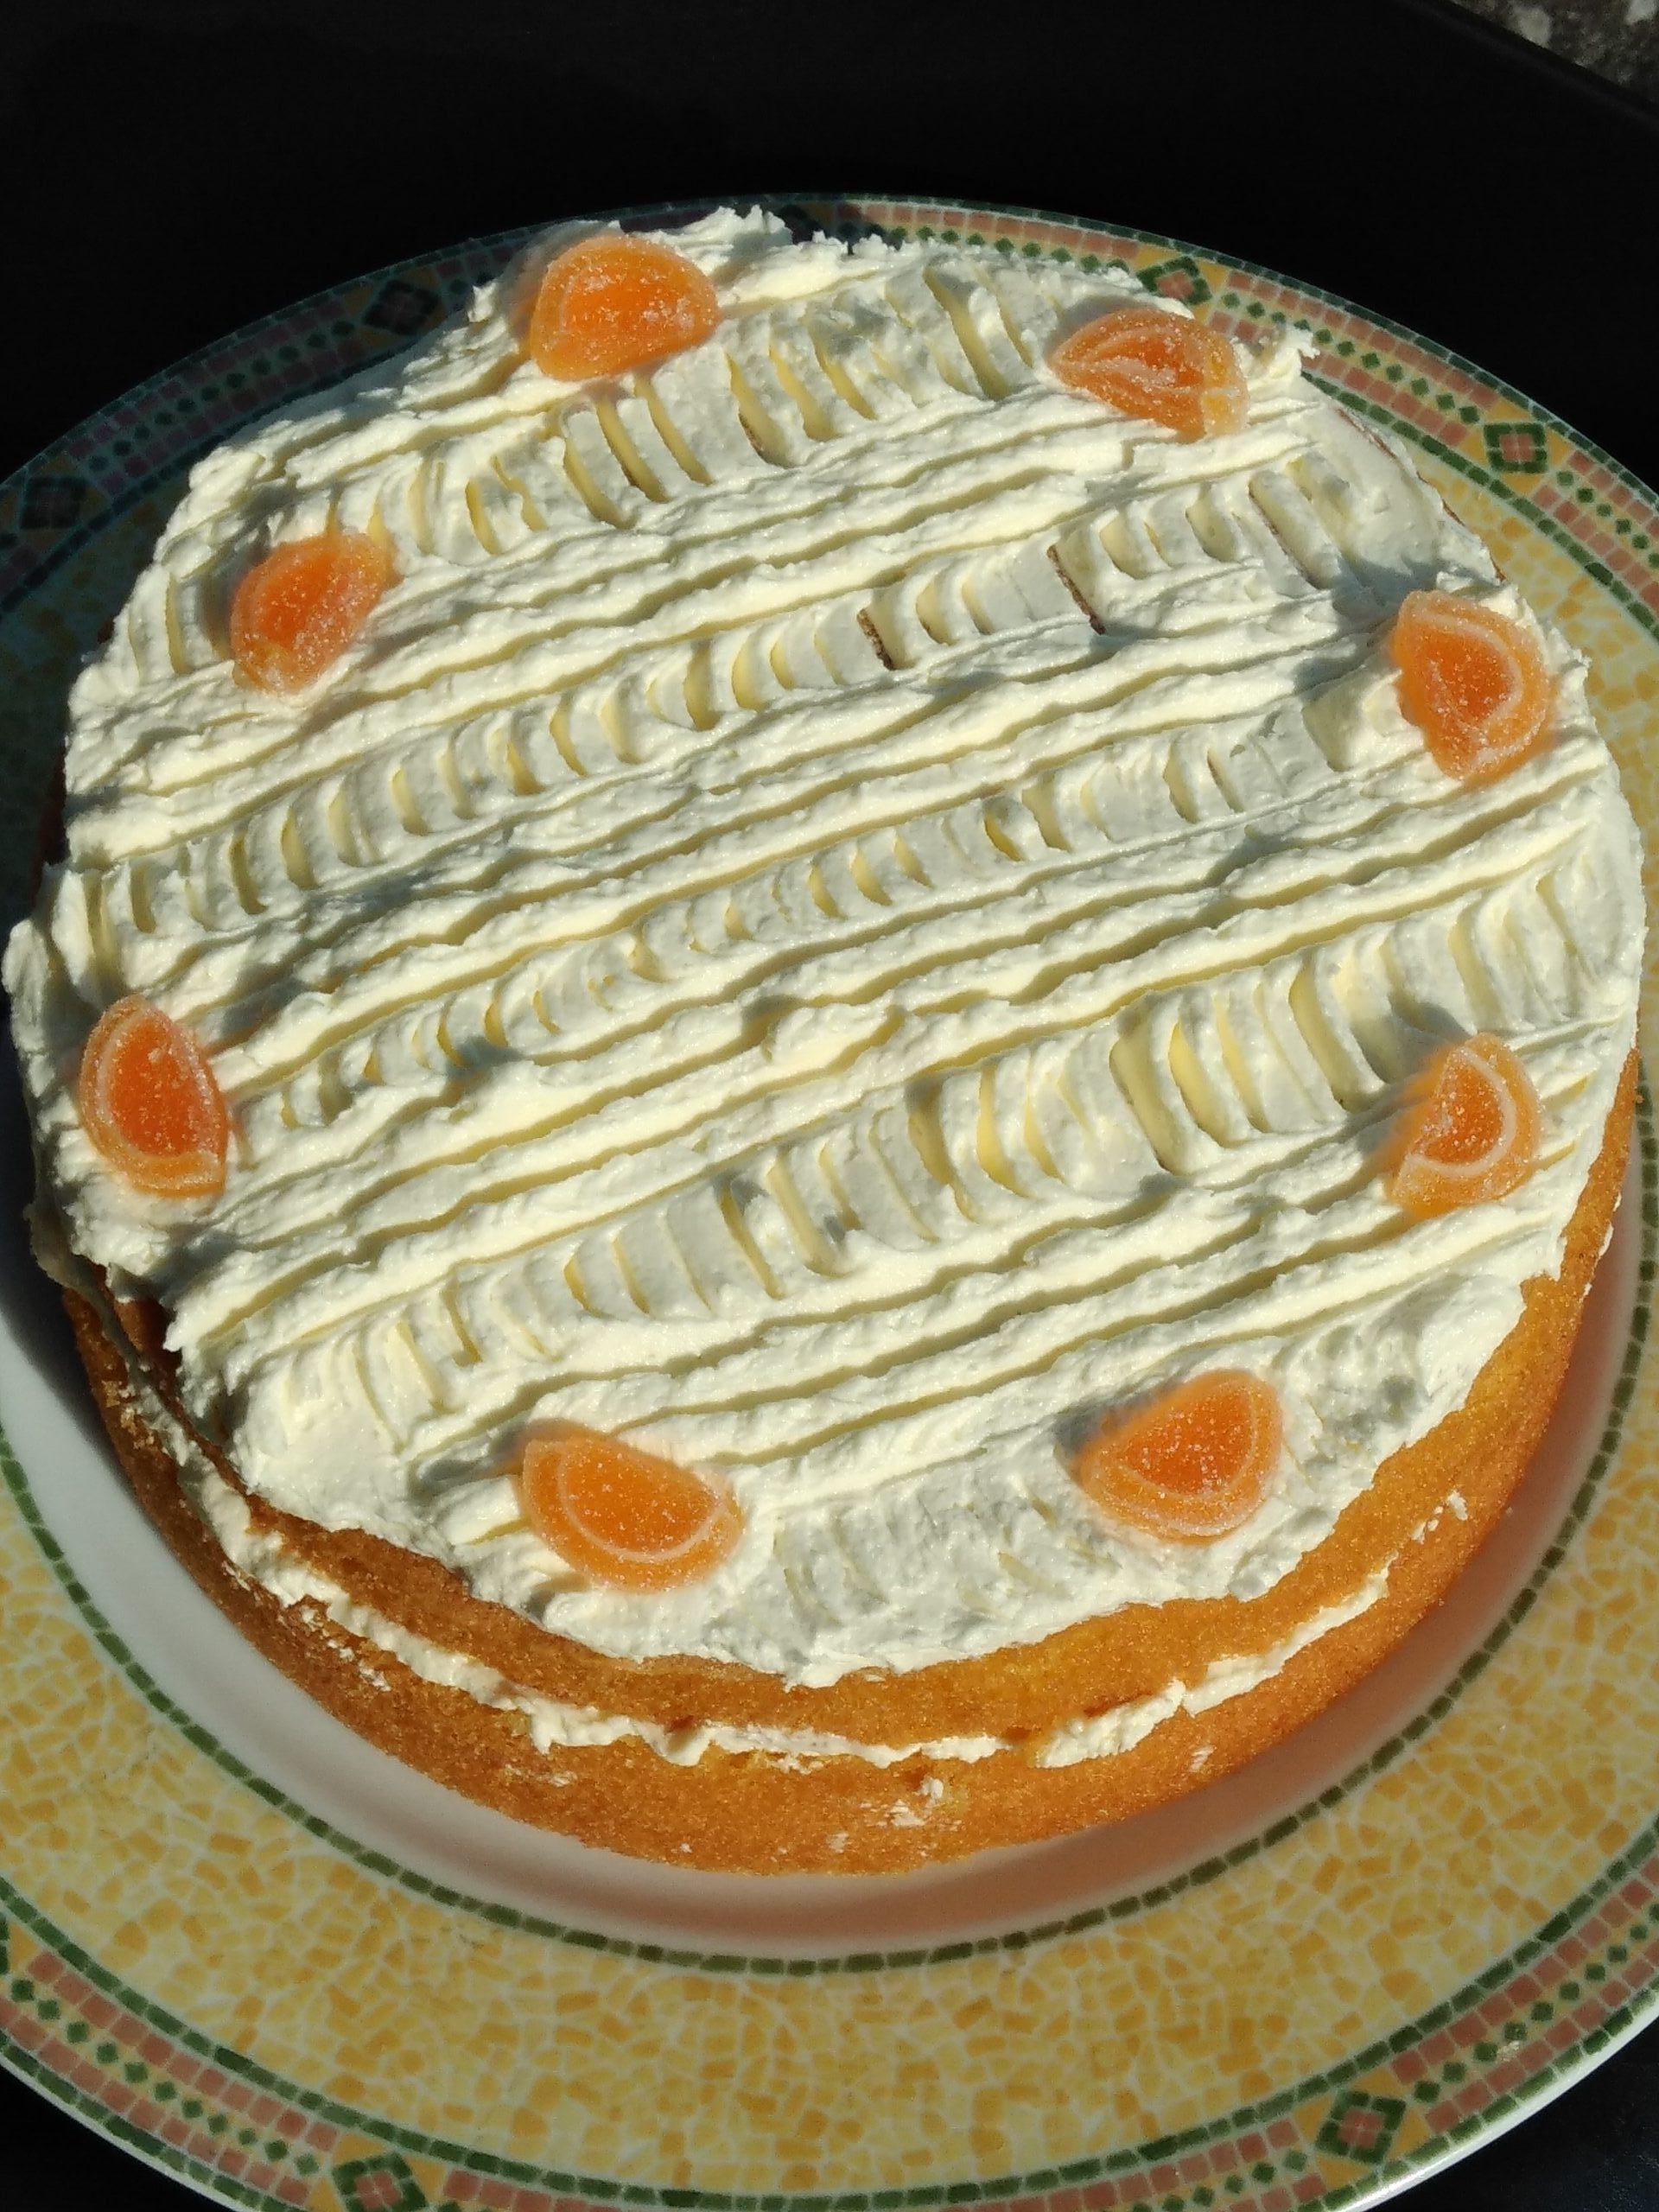 The orange cake has been decorated with jelly orange segments on top of the buttercream